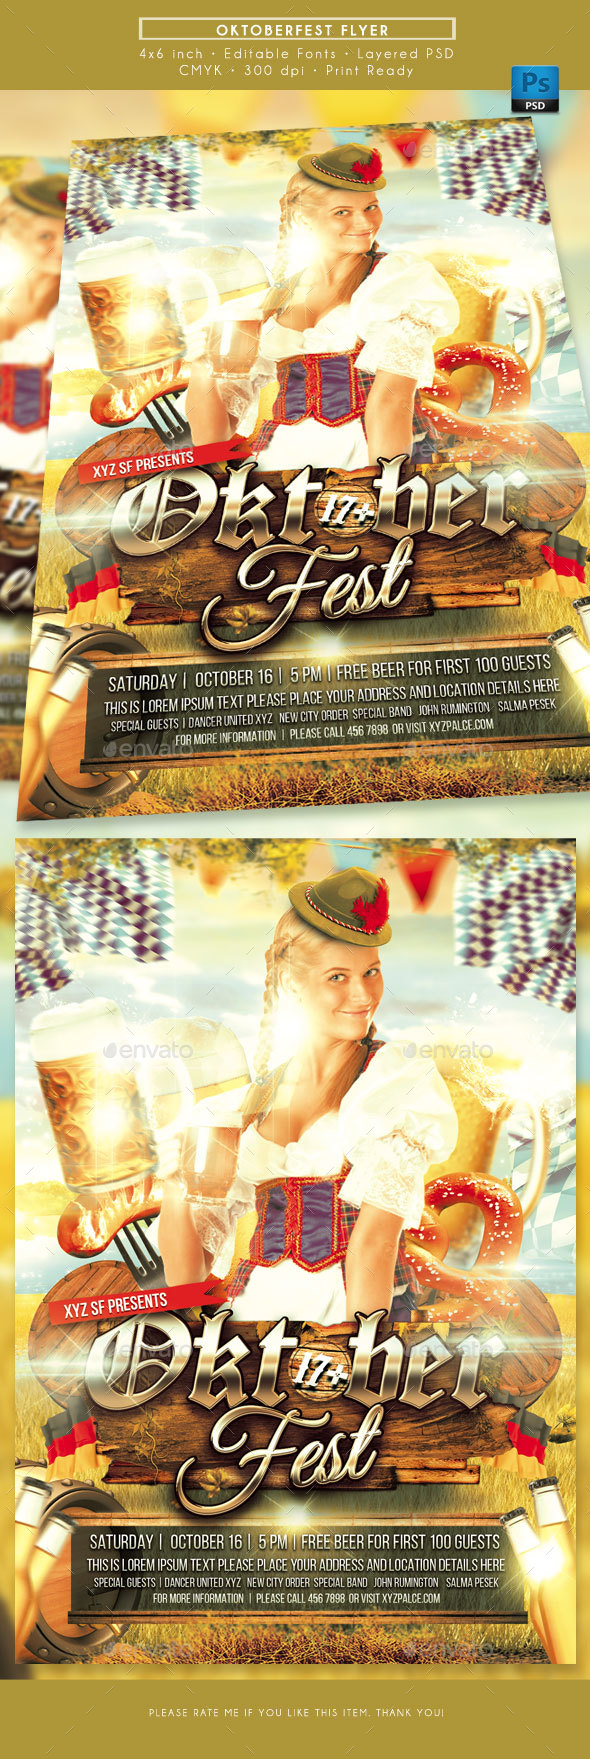 Oktoberfest Event Flyer - Events Flyers